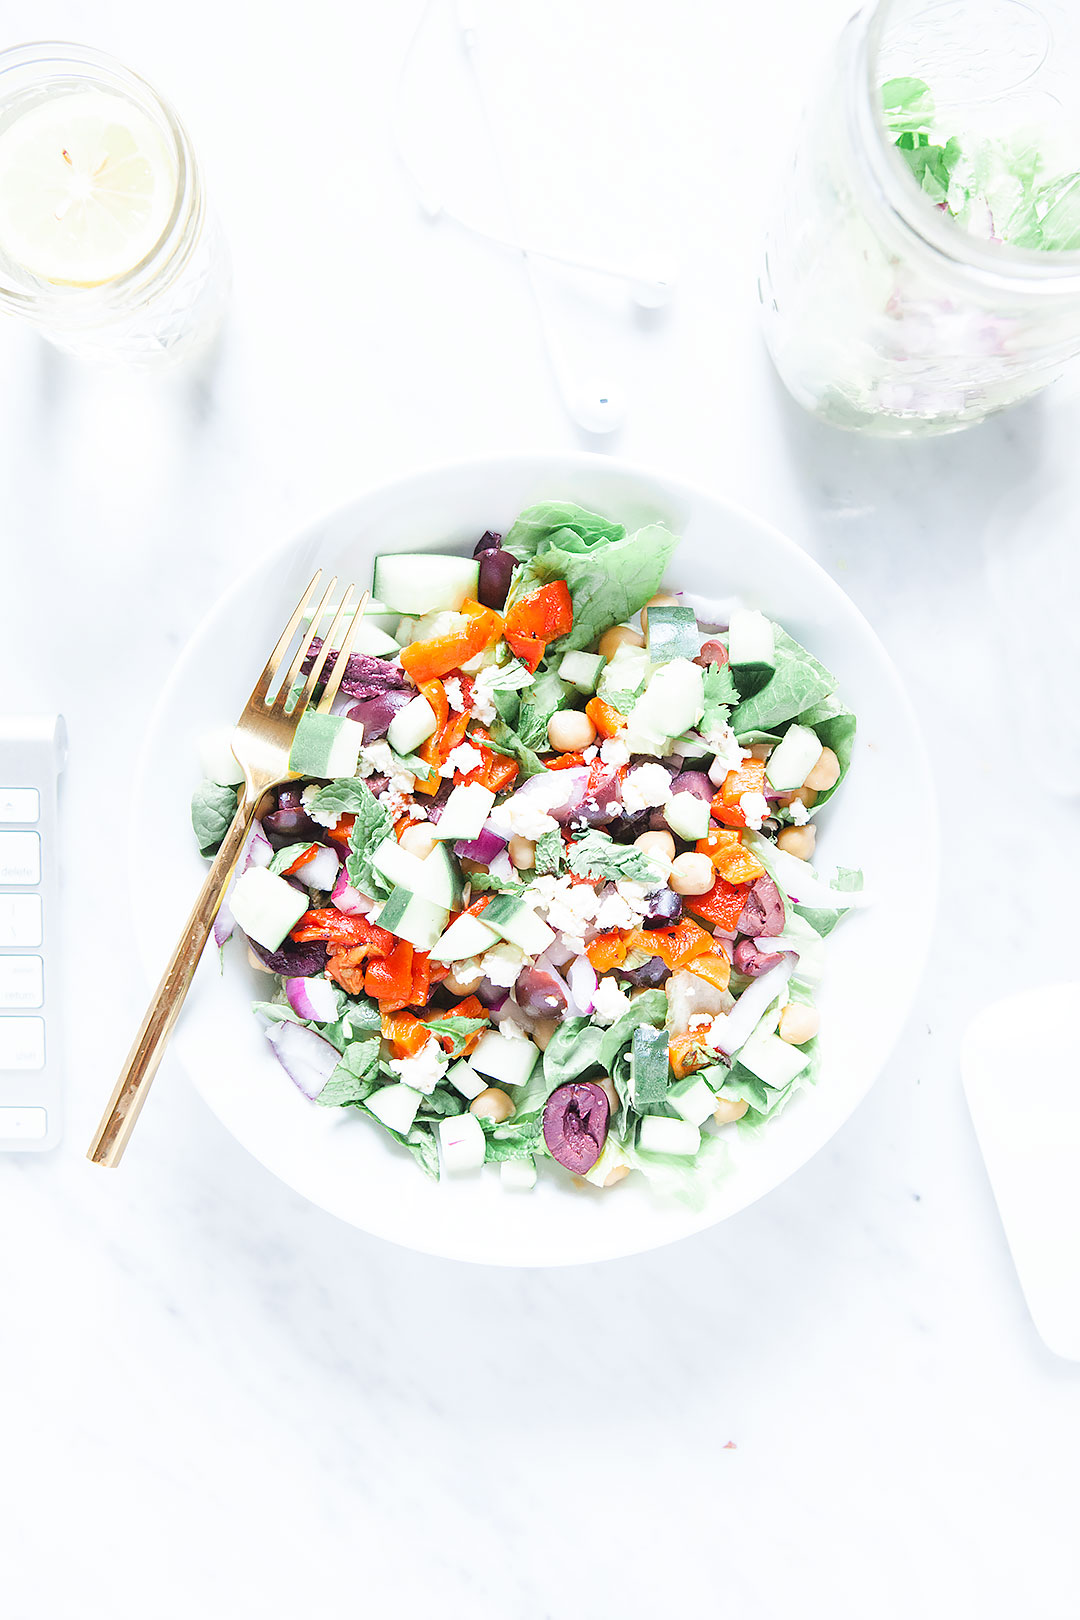 CHOPPED GREEK POWER SALAD | A refreshing, healthy chopped Greek salad with a simple red wine vinaigrette. Full of Greek flavor with oregano, roasted red pepper, mint, and feta. Easy to meal prep or pack to bring to the beach! | LOVELEAF CO. #greeksalad #mealprep #easyrecipe #salad #greek #masonjarsalad #mealprepsalad #easysalad #lunchideas #saladdressing #lunchideas #lunchmealprep